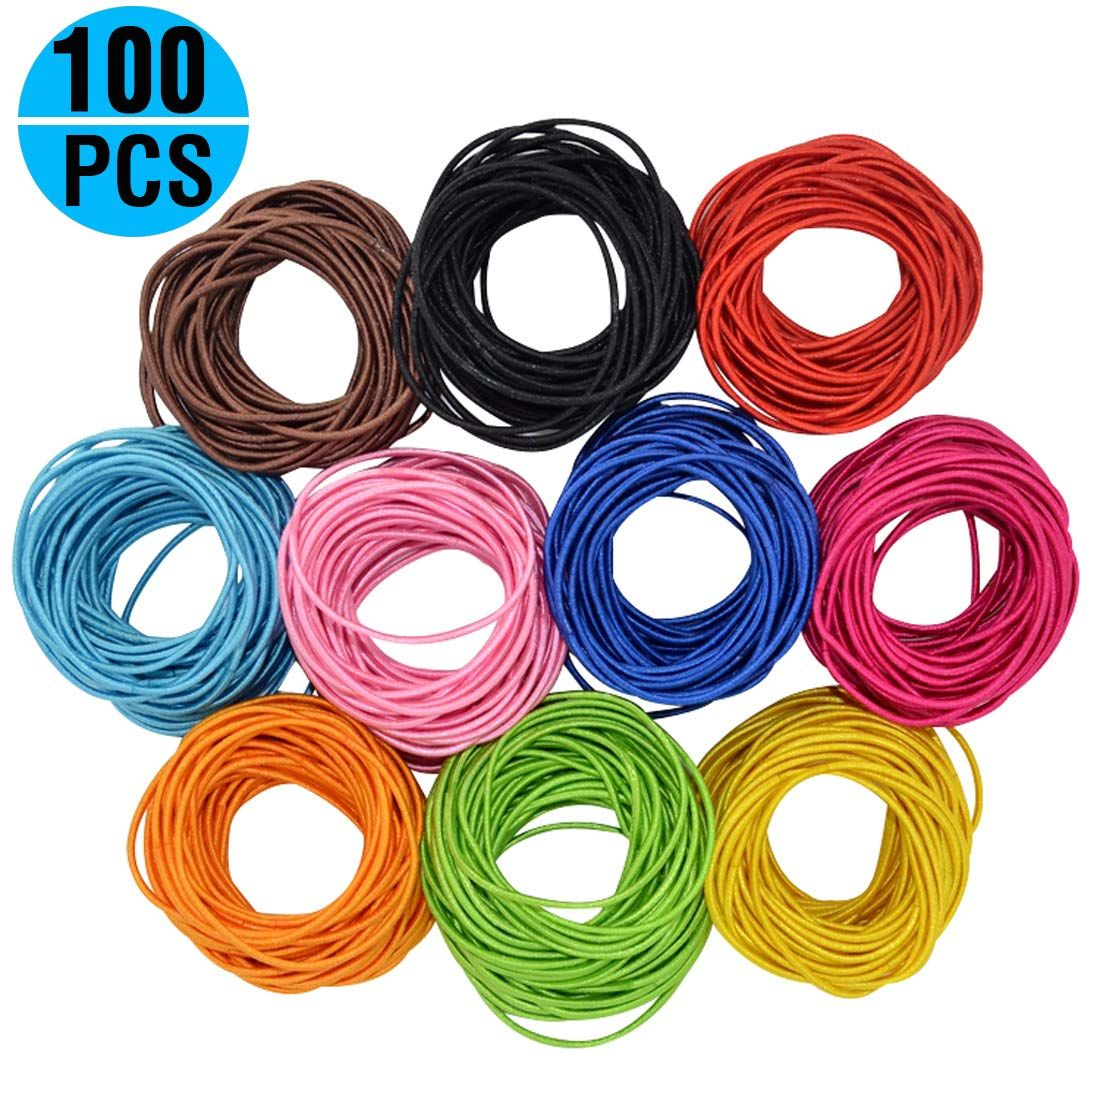 Fashion and Lifestyle Boutique Baby Girls Hair Ties Ponytail Holders -  Stretchy Elastic Hair Ropes Rubber 5a7638f602b